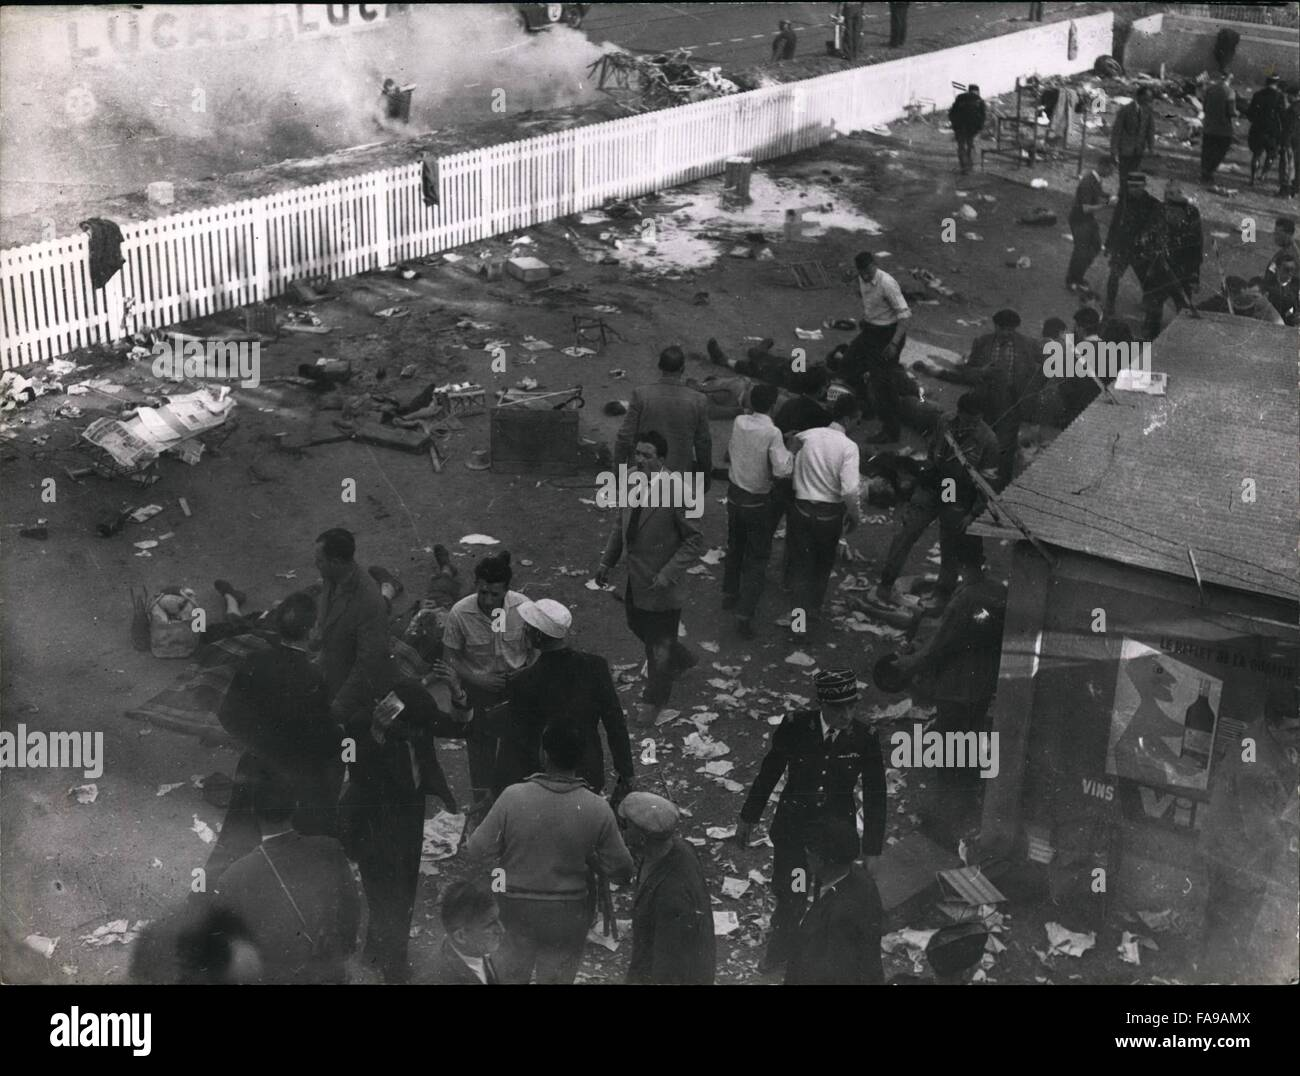 Le Mans Disaster Stock Photos Amp Le Mans Disaster Stock